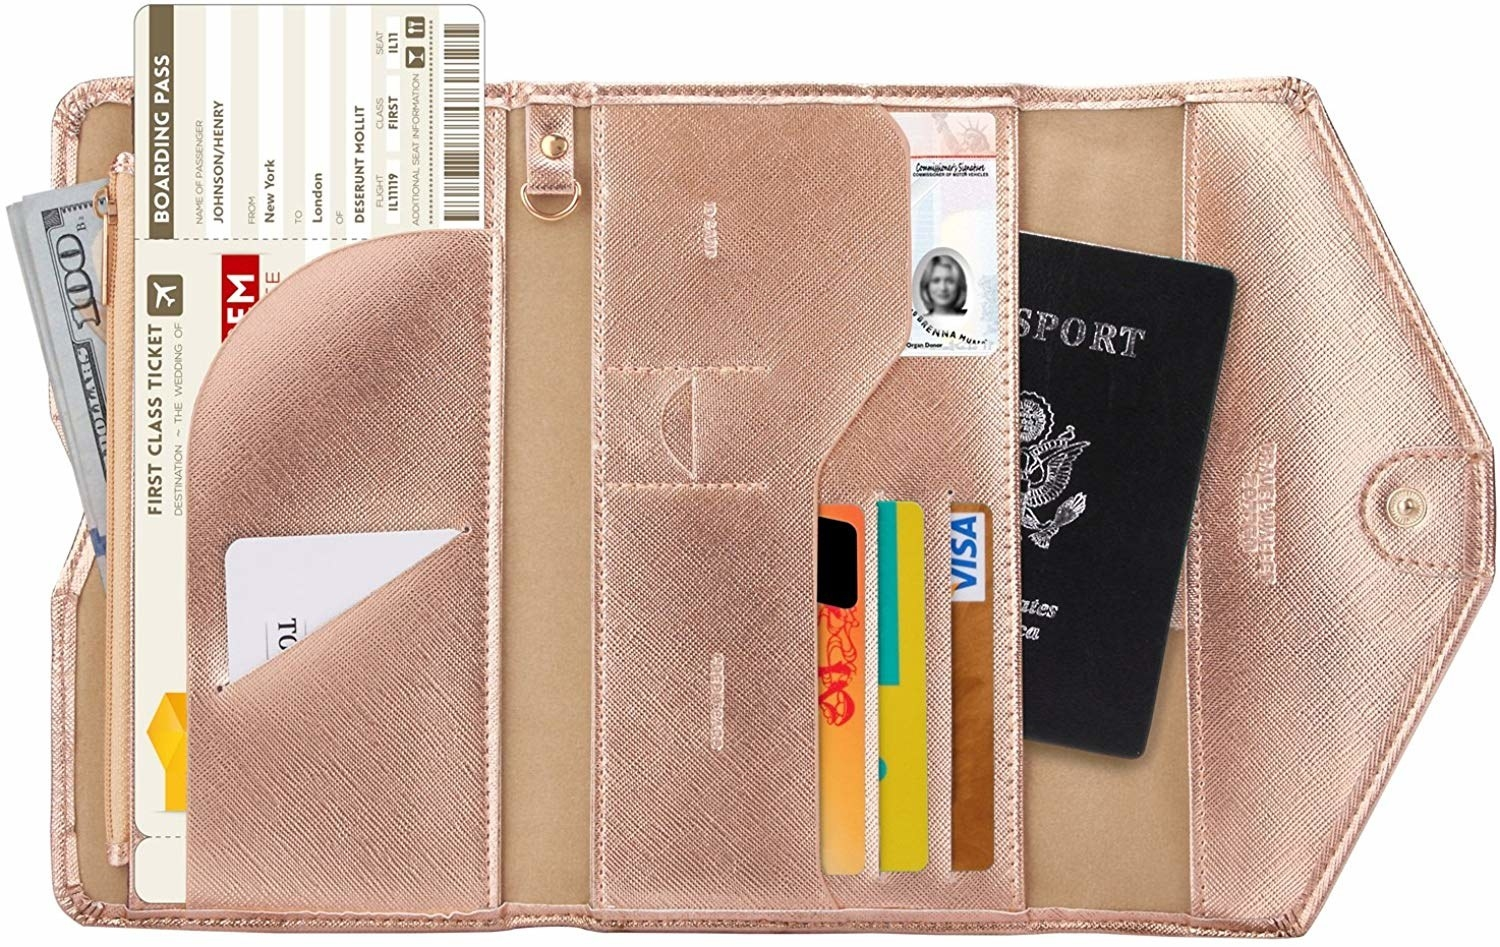 The travel wallet in rose gold